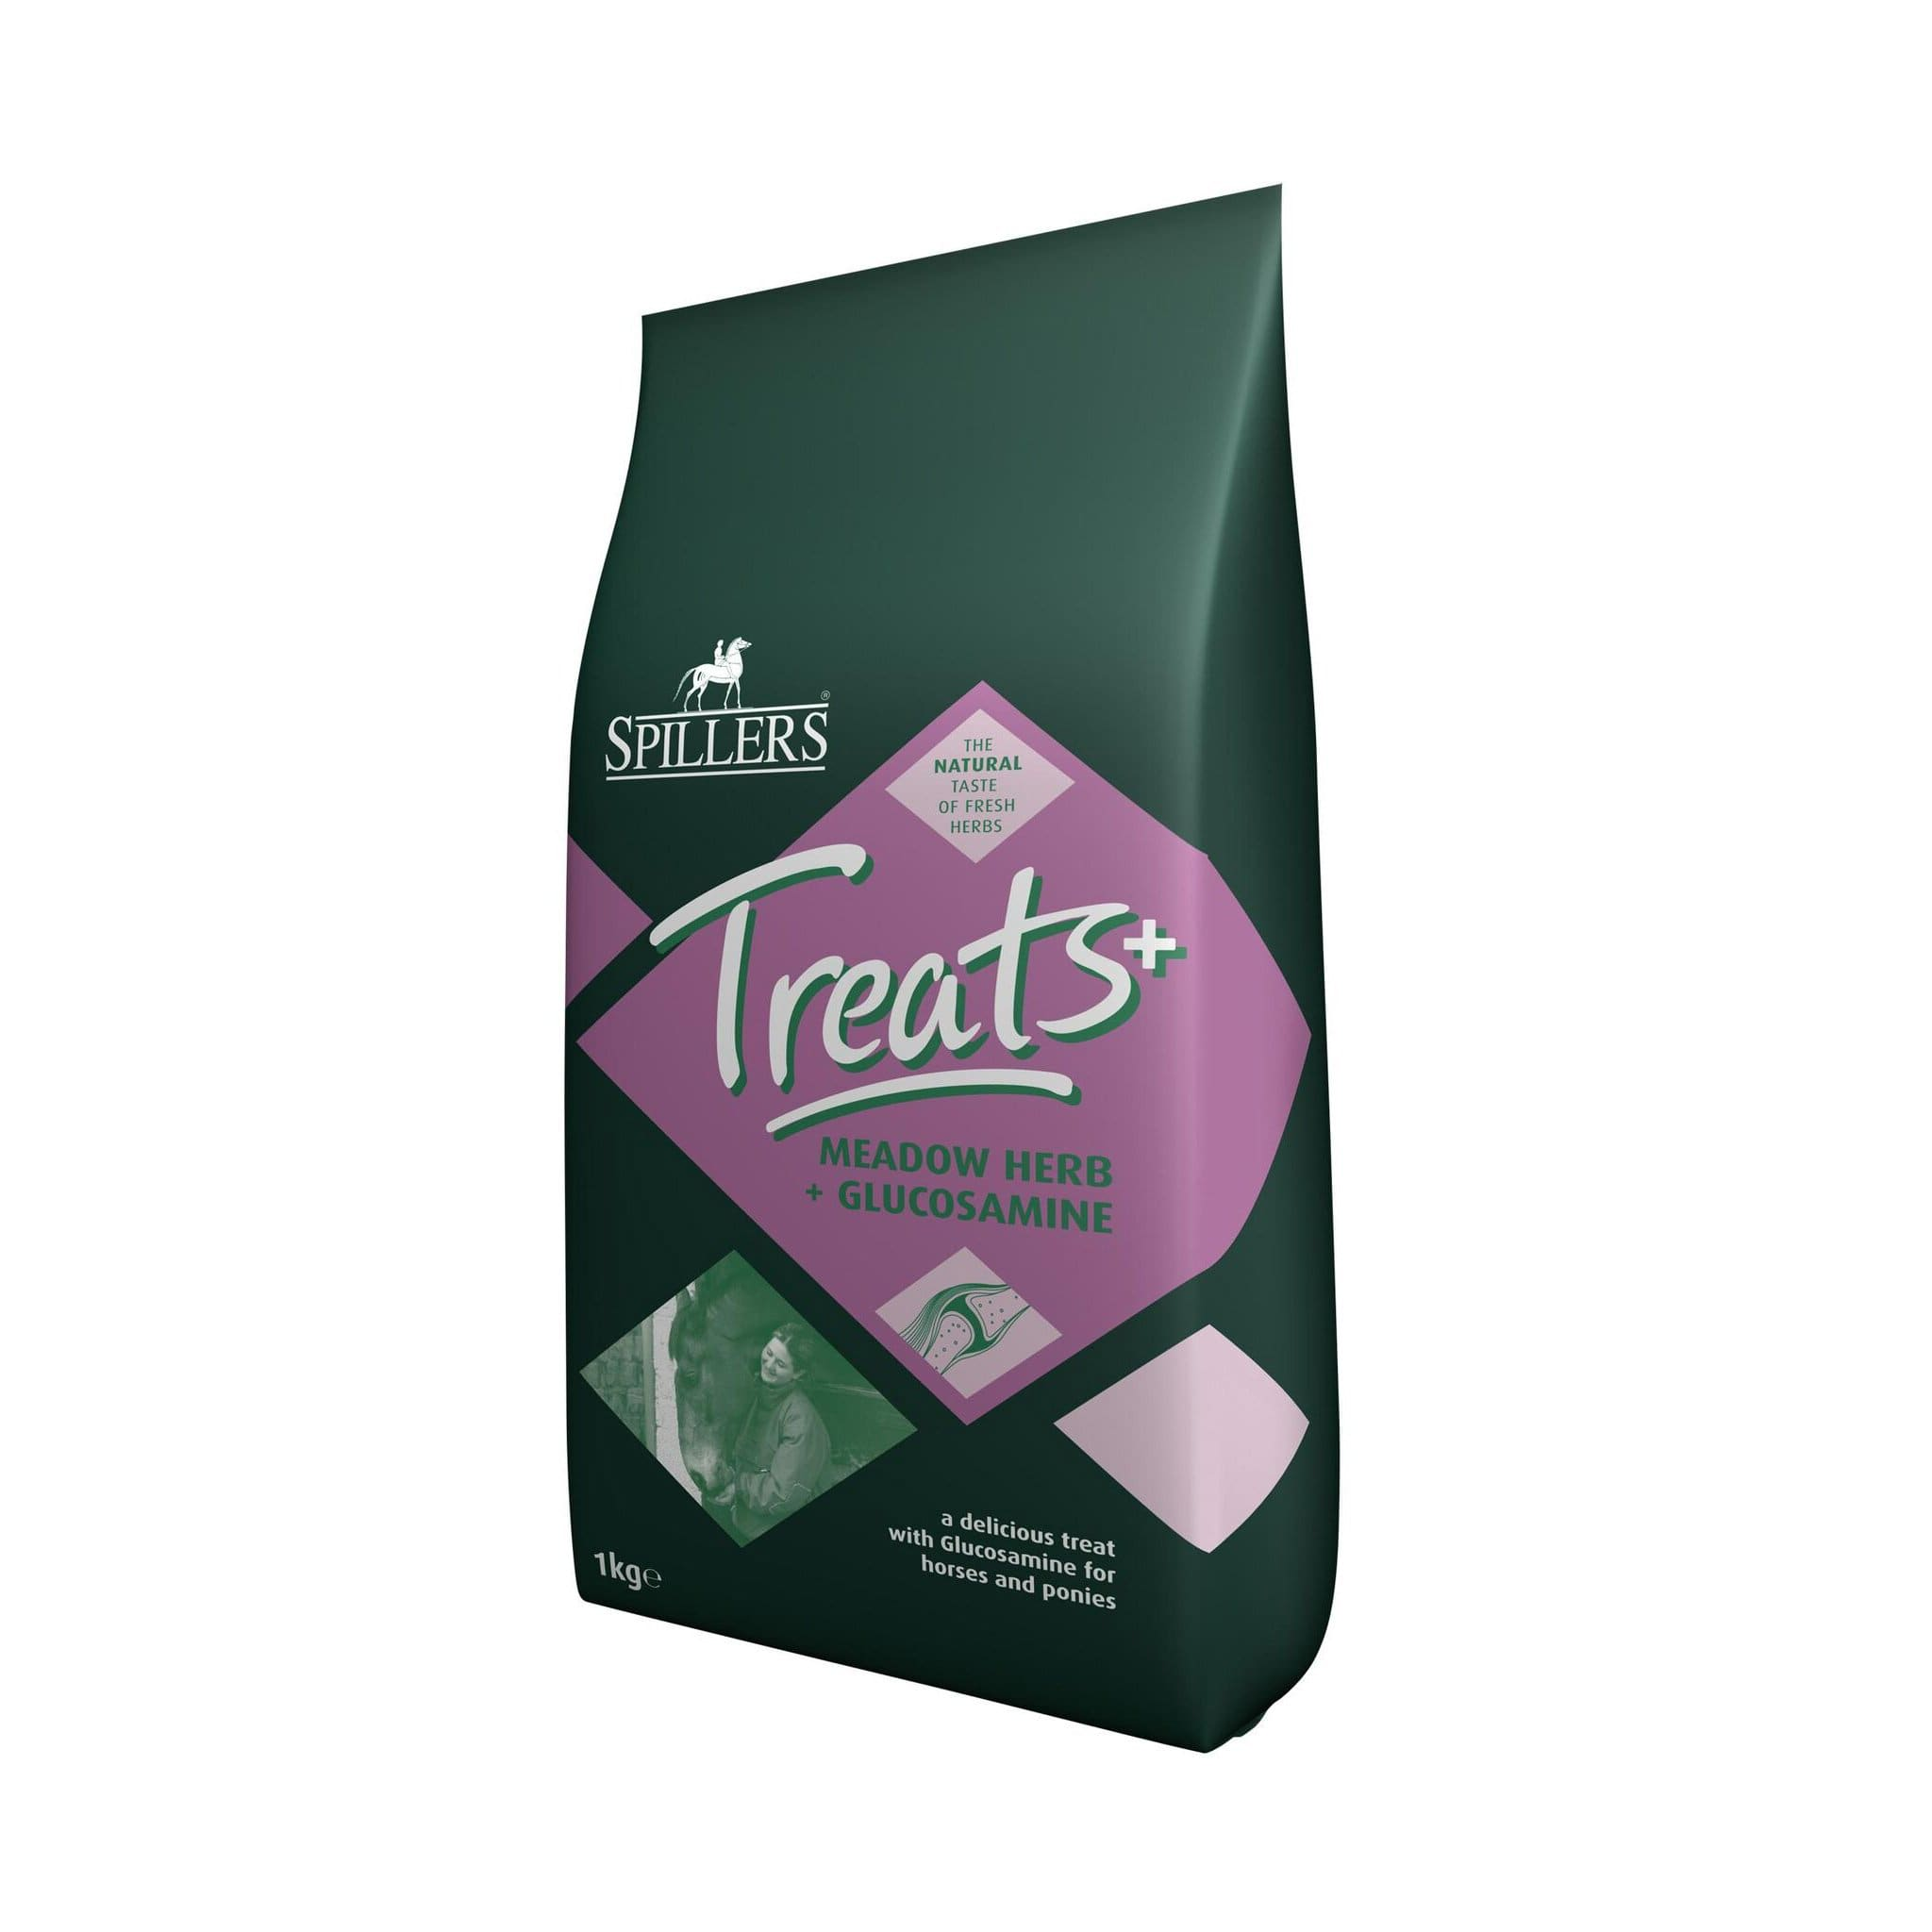 Spillers Meadow Herb Treats + Glucosamine 1kg